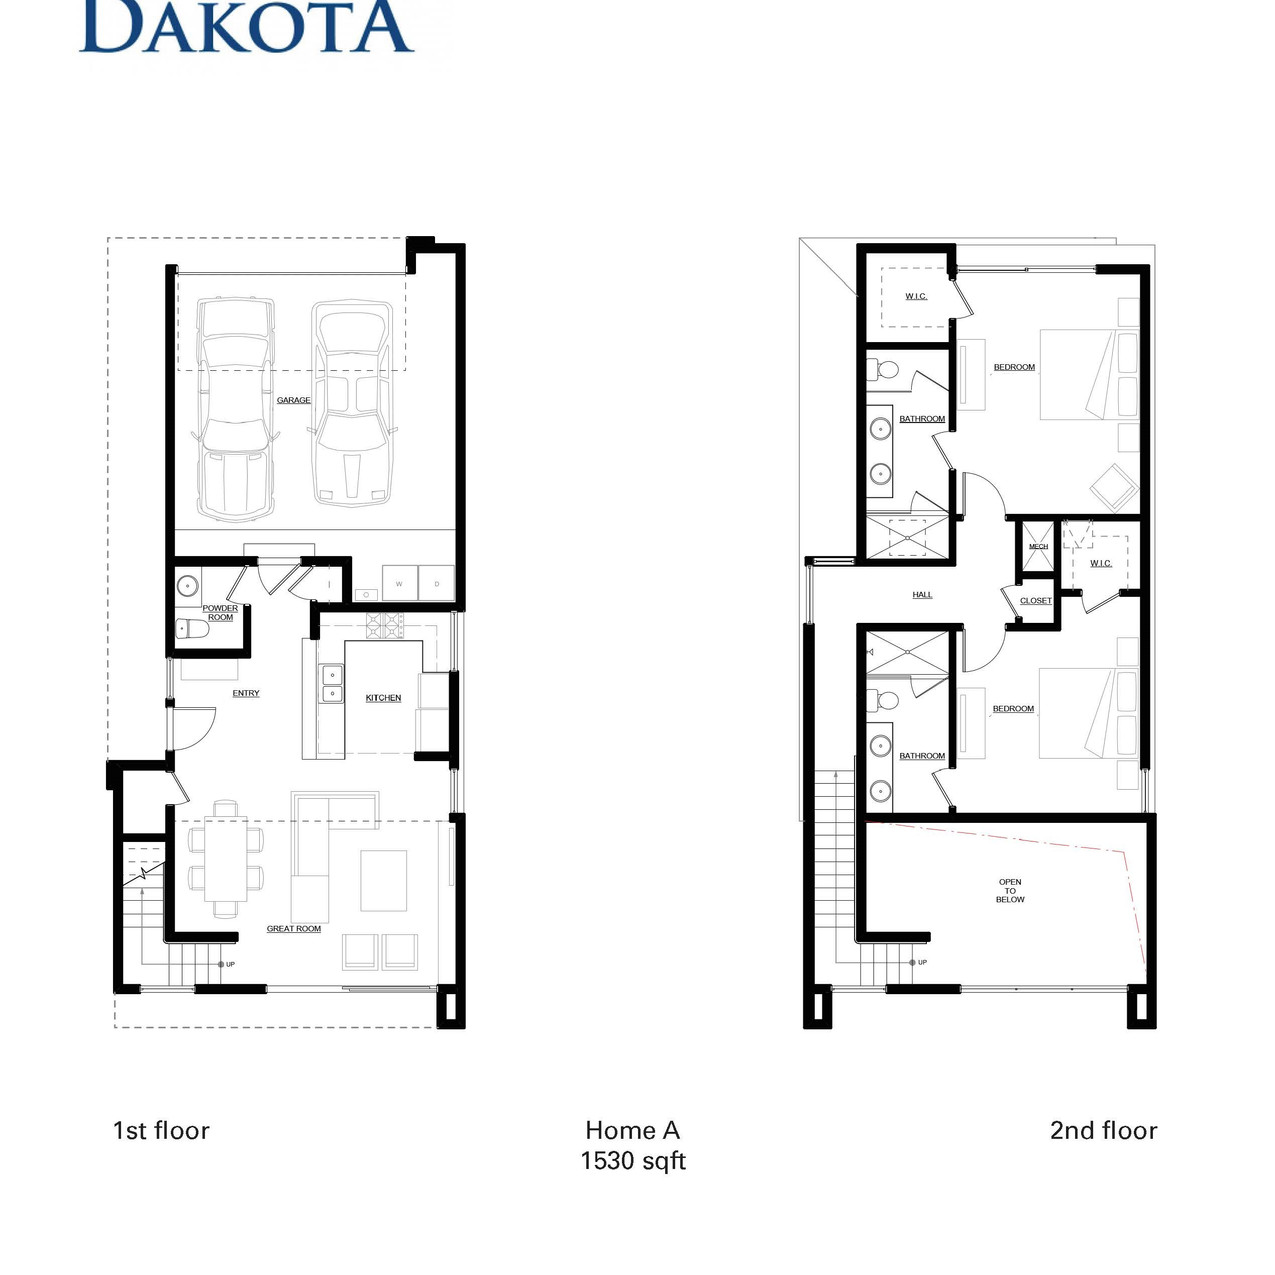 Dakota-Floor-Plans_Phase1-Home A_Page_1